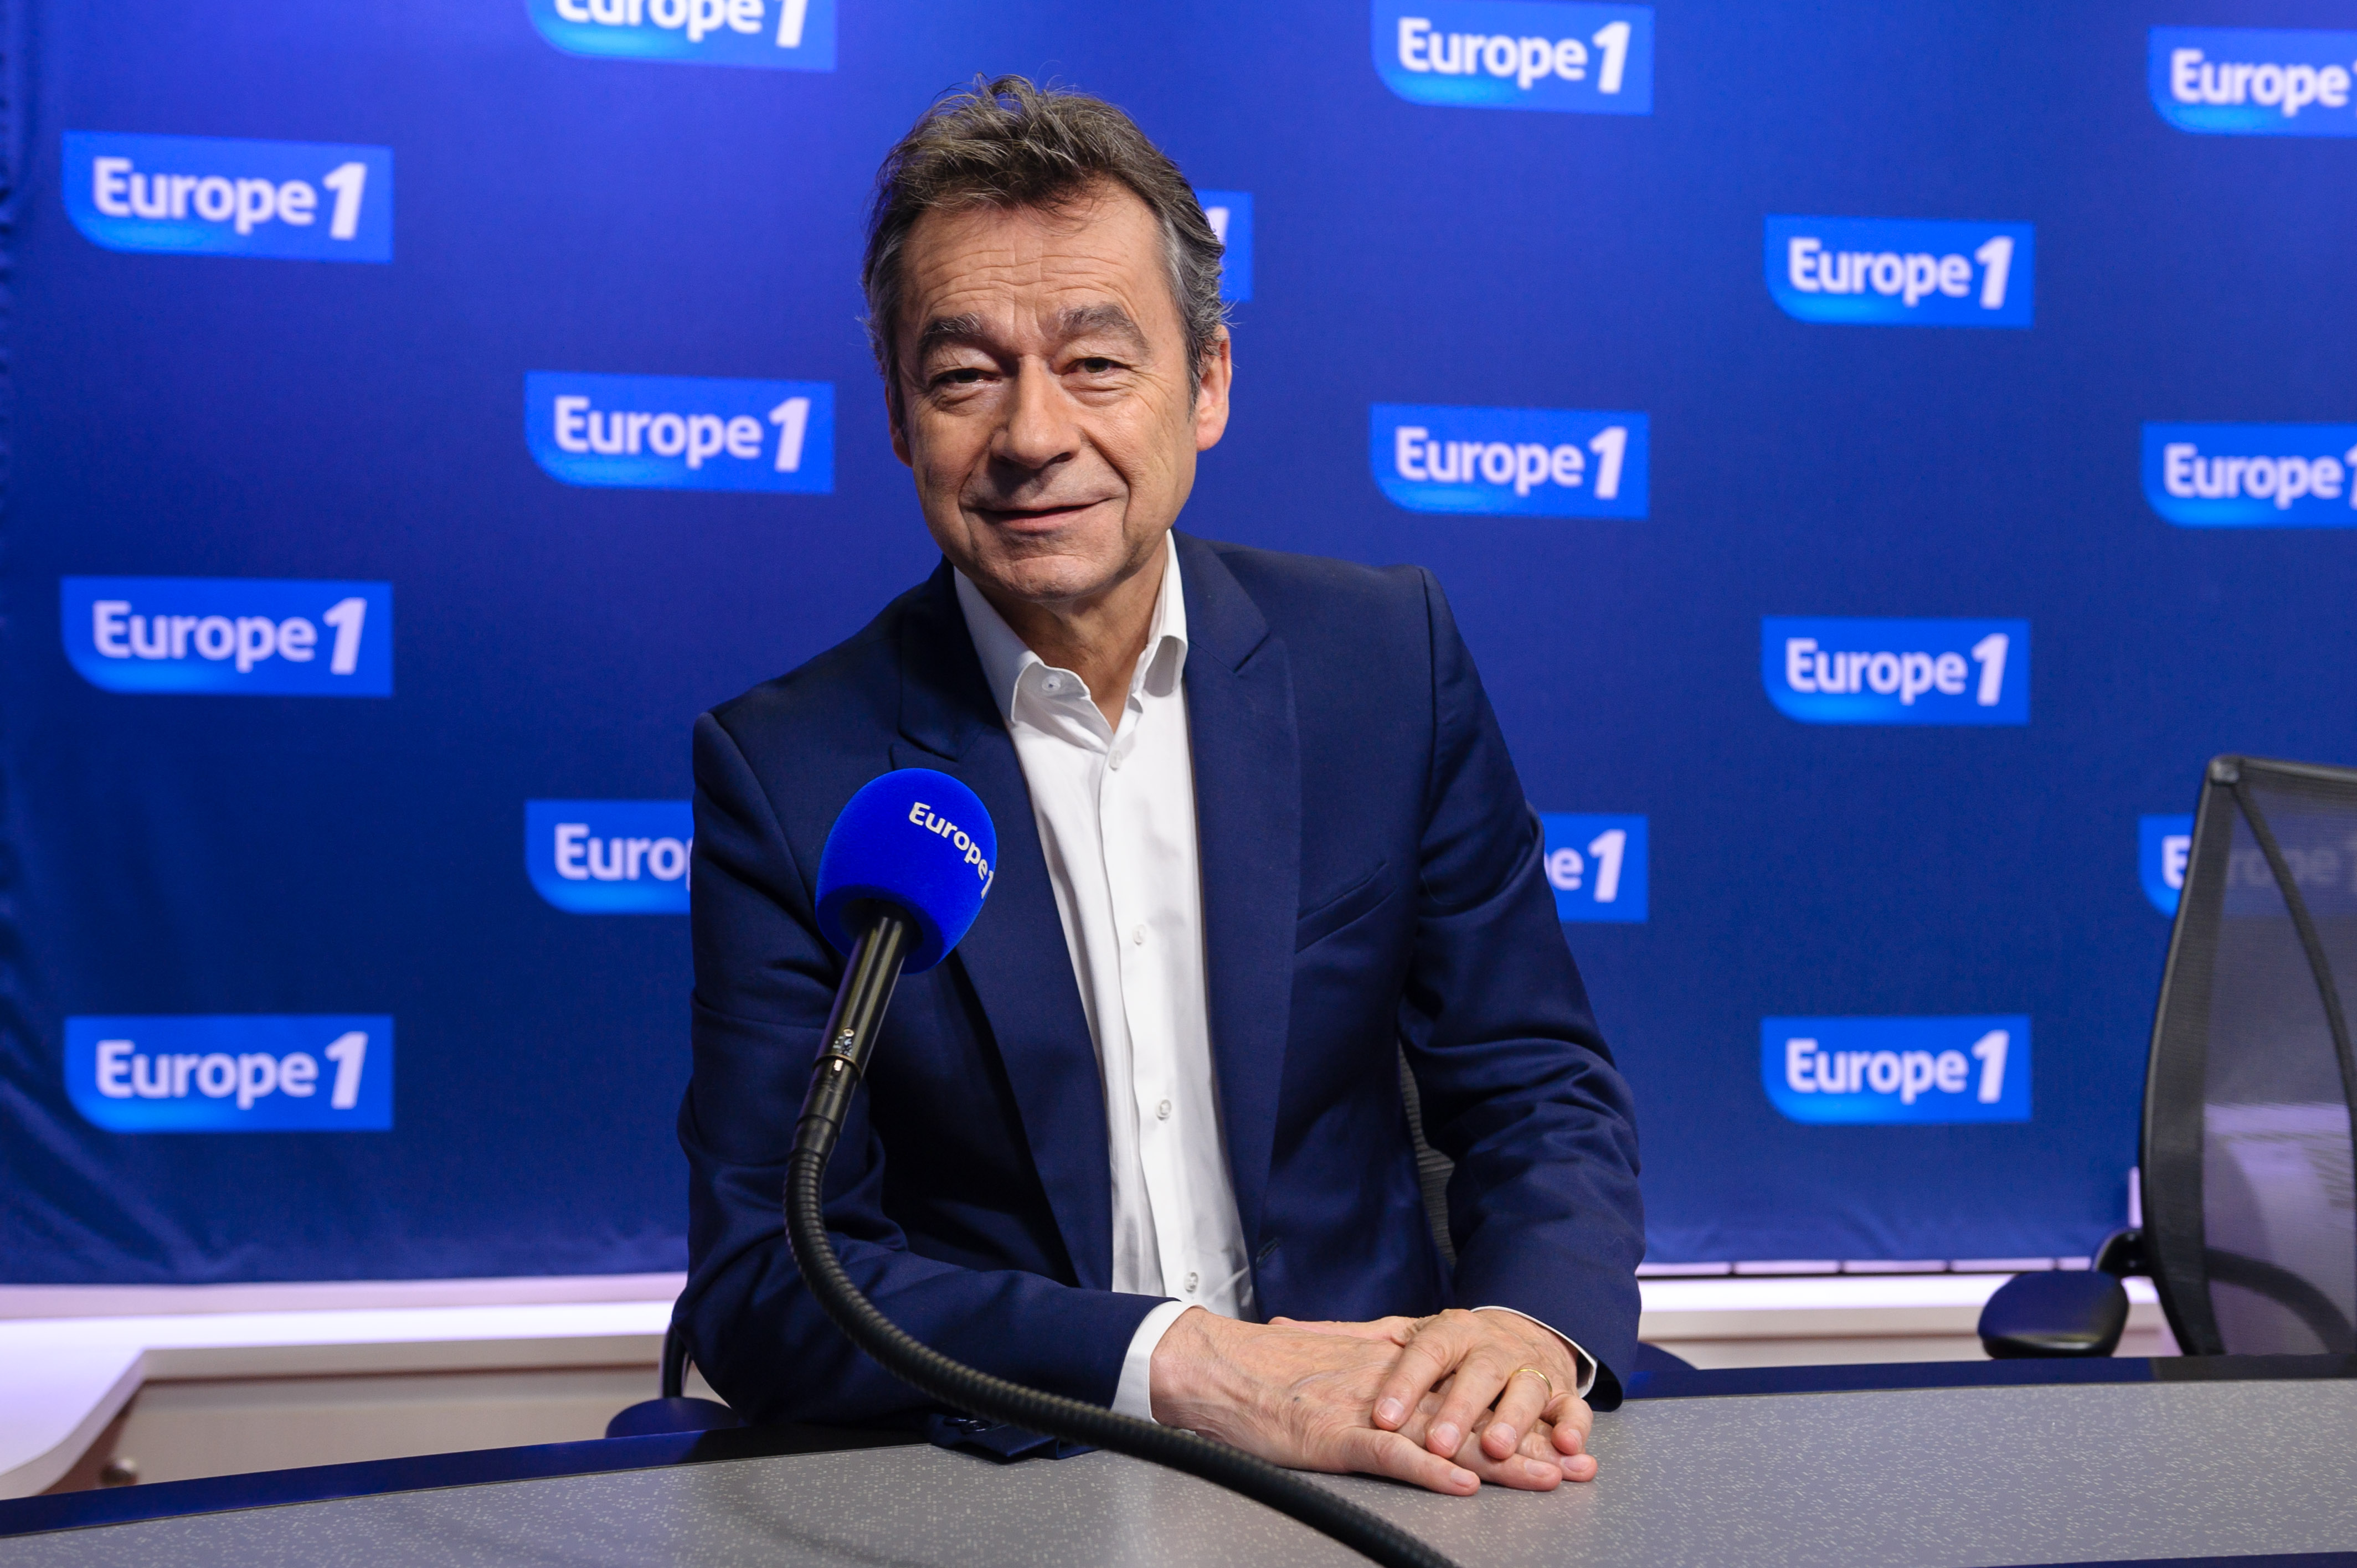 Michel Denisot rejoint Europe 1, le temps de la Coupe du monde  © C. Petit-Tesson / Capa Pictures / Europe 1